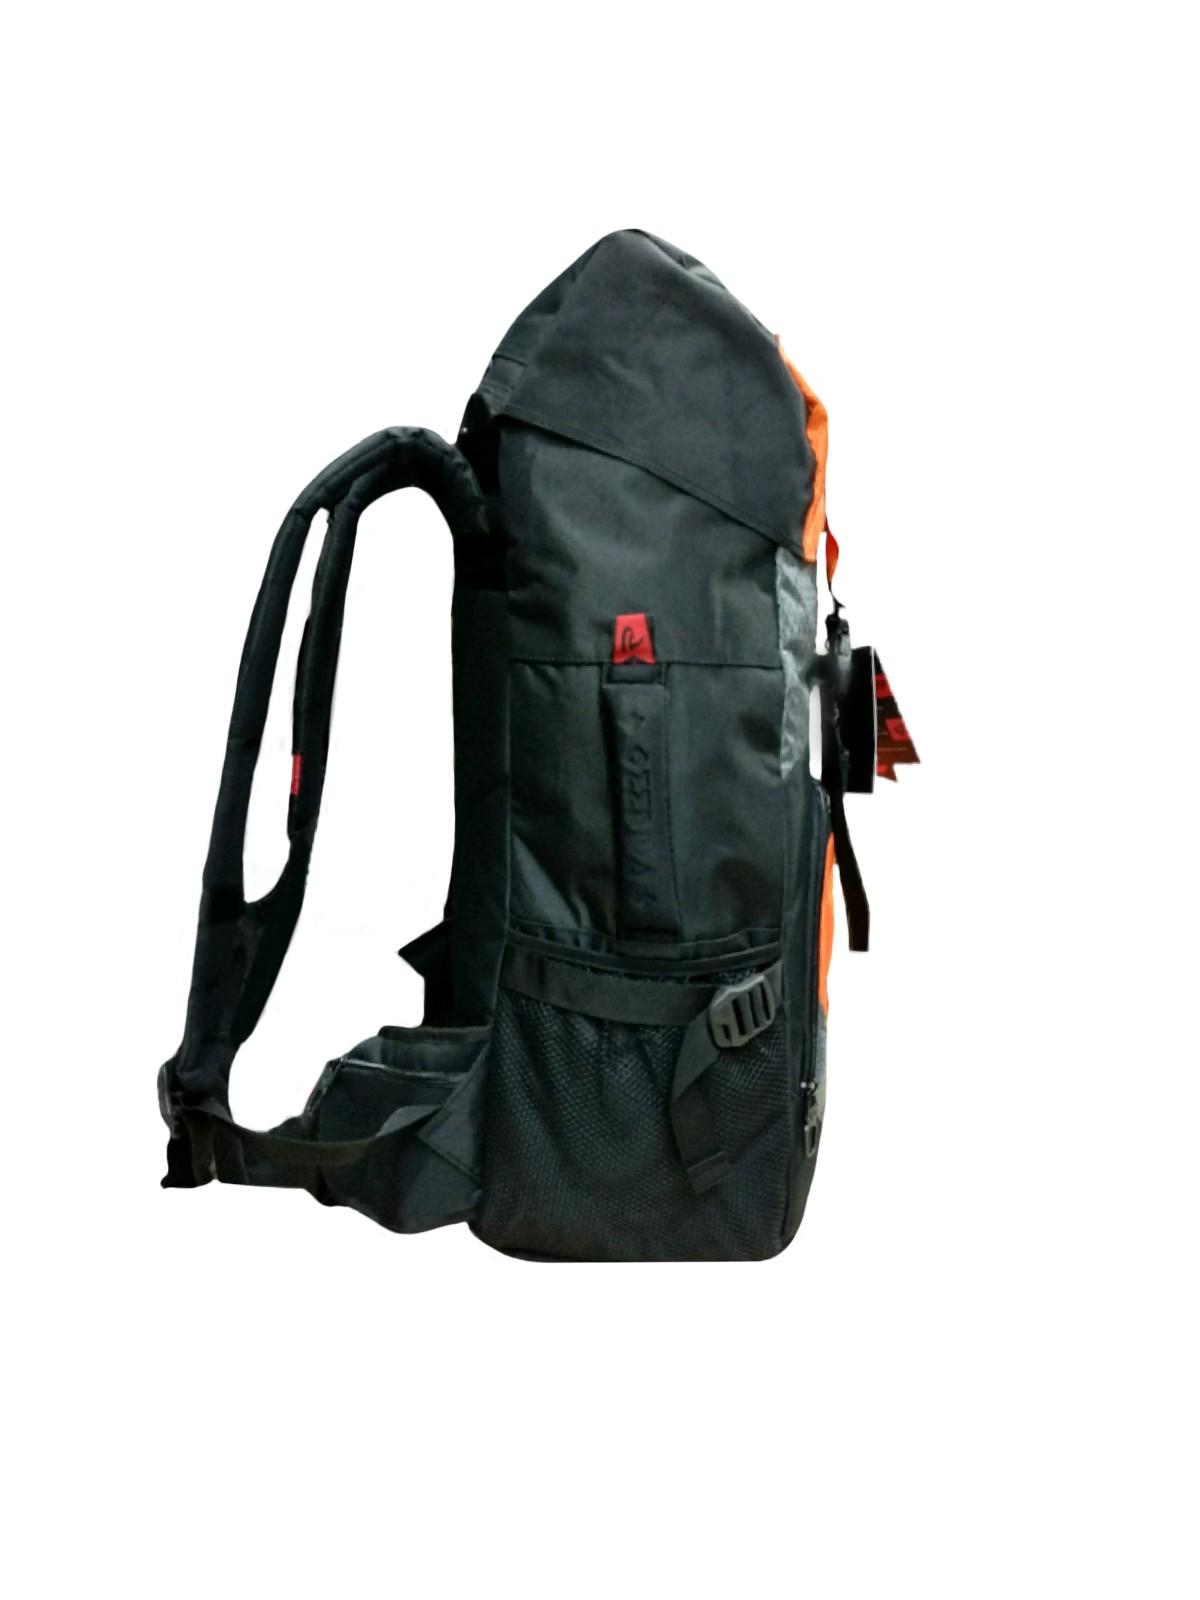 Palazzo Tas Ransel Backpack Original 35429m Black Raincover Daftar 3in1 B01 Source Outdoor Cariel 55 Liters Orange